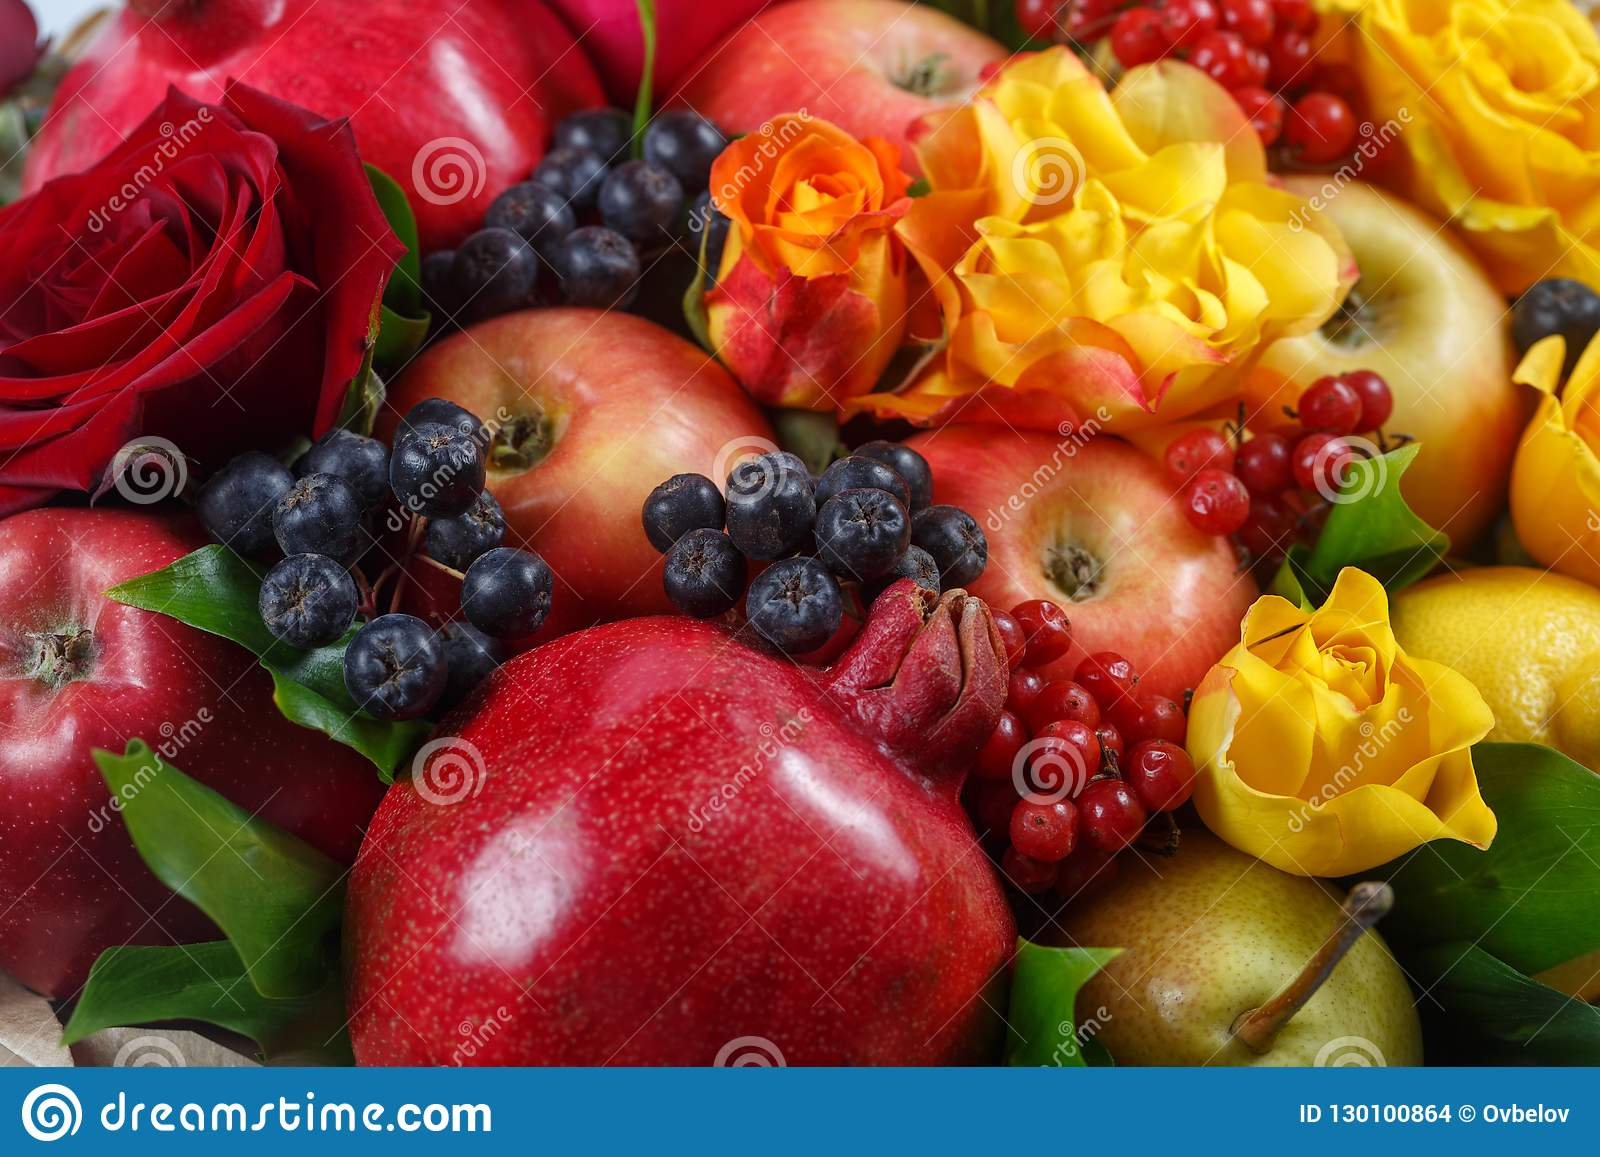 Still life consisting of pomegranates, apples, black rowan, red viburnum, pears, lemons and flowers of red and yellow roses close-